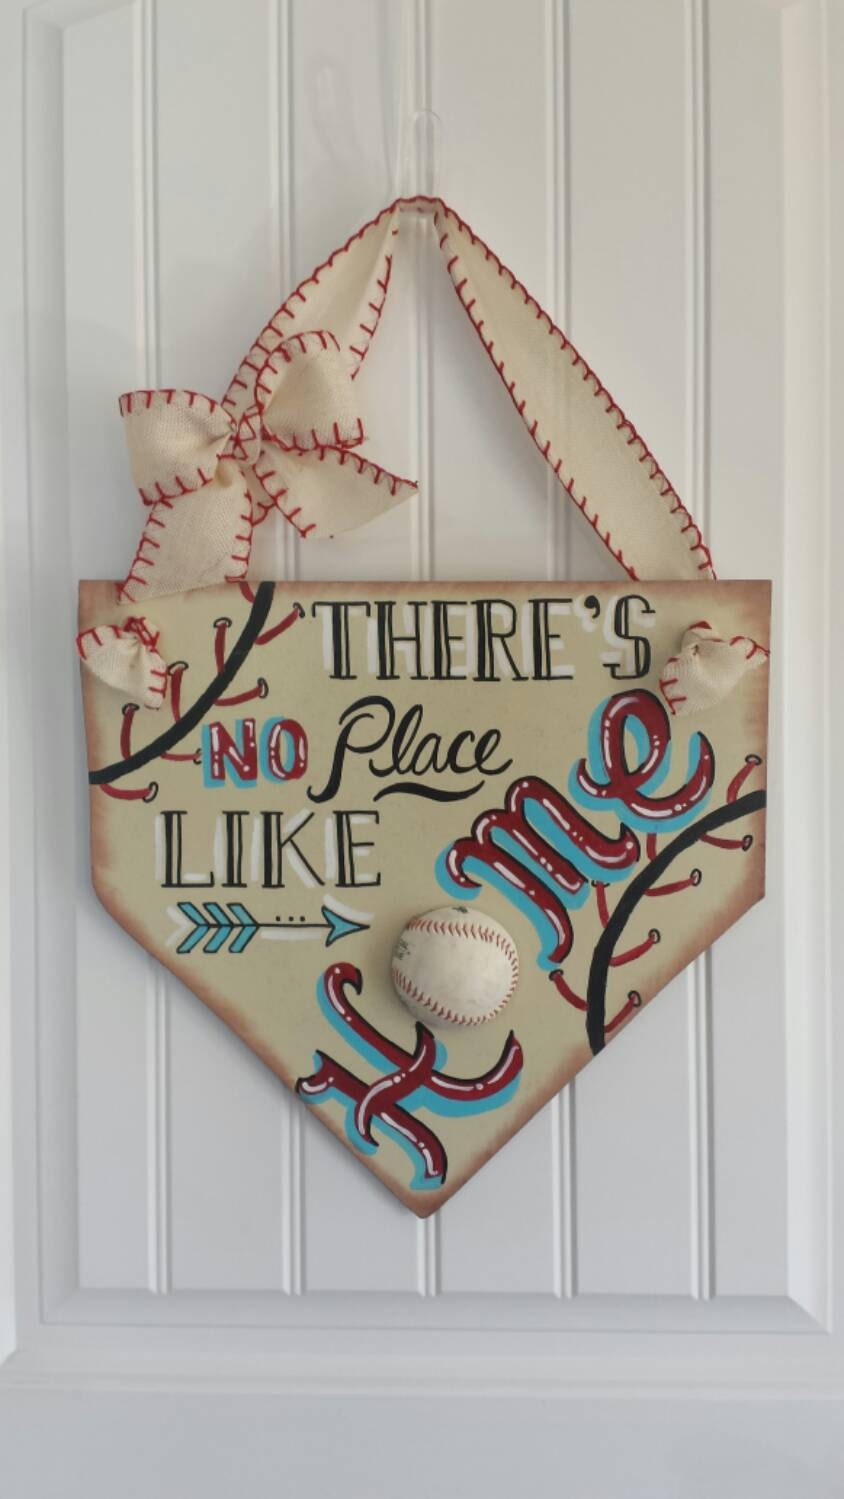 Https Www Etsy Com Listing 239900726 Baseball Decor Theres No Place Like Home